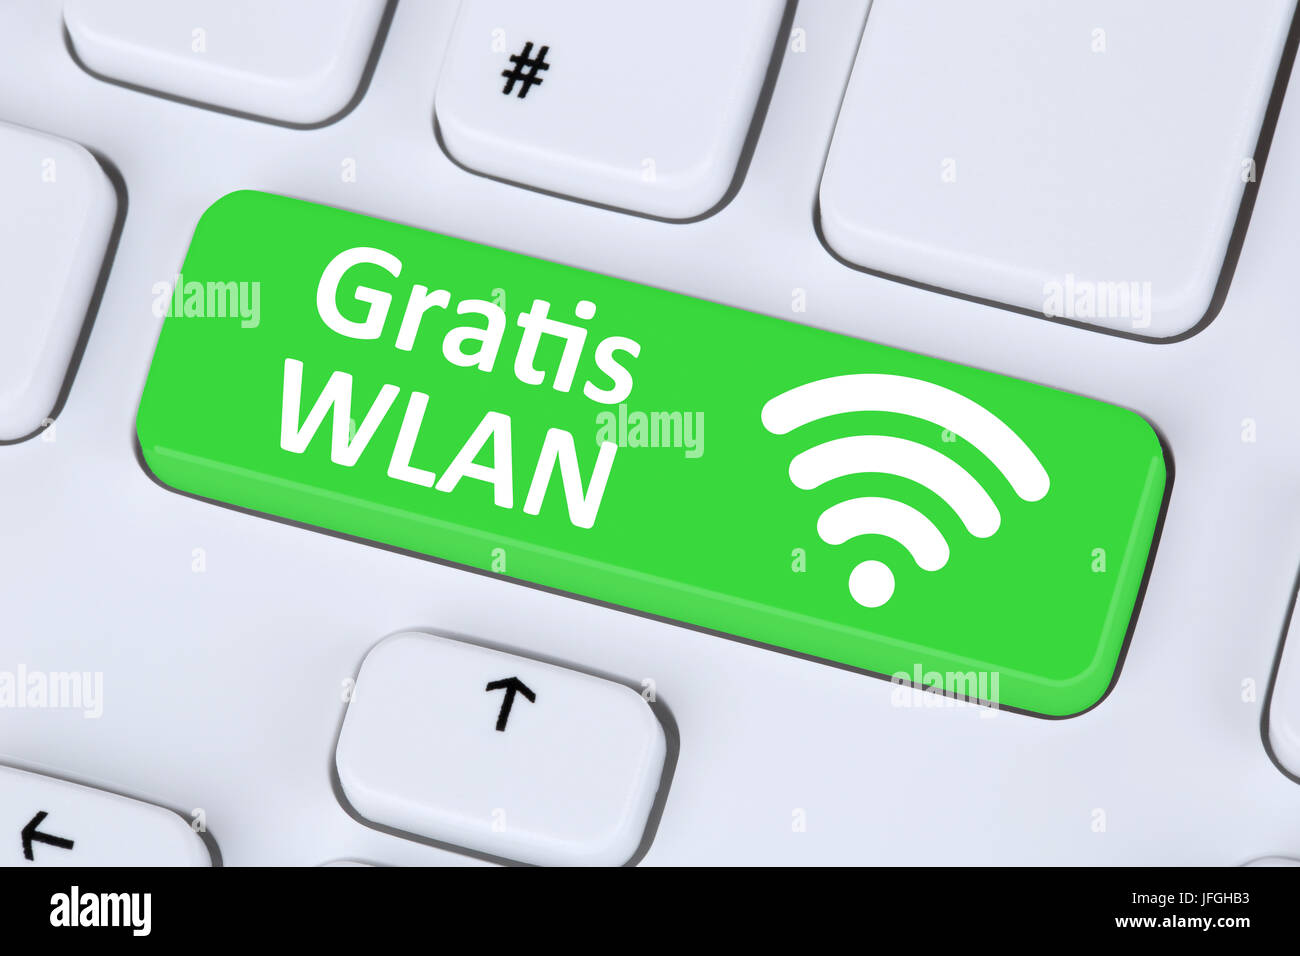 Gratis oder WLAN WiFi Hotspot Verbindung ordinateur Internet Photo Stock